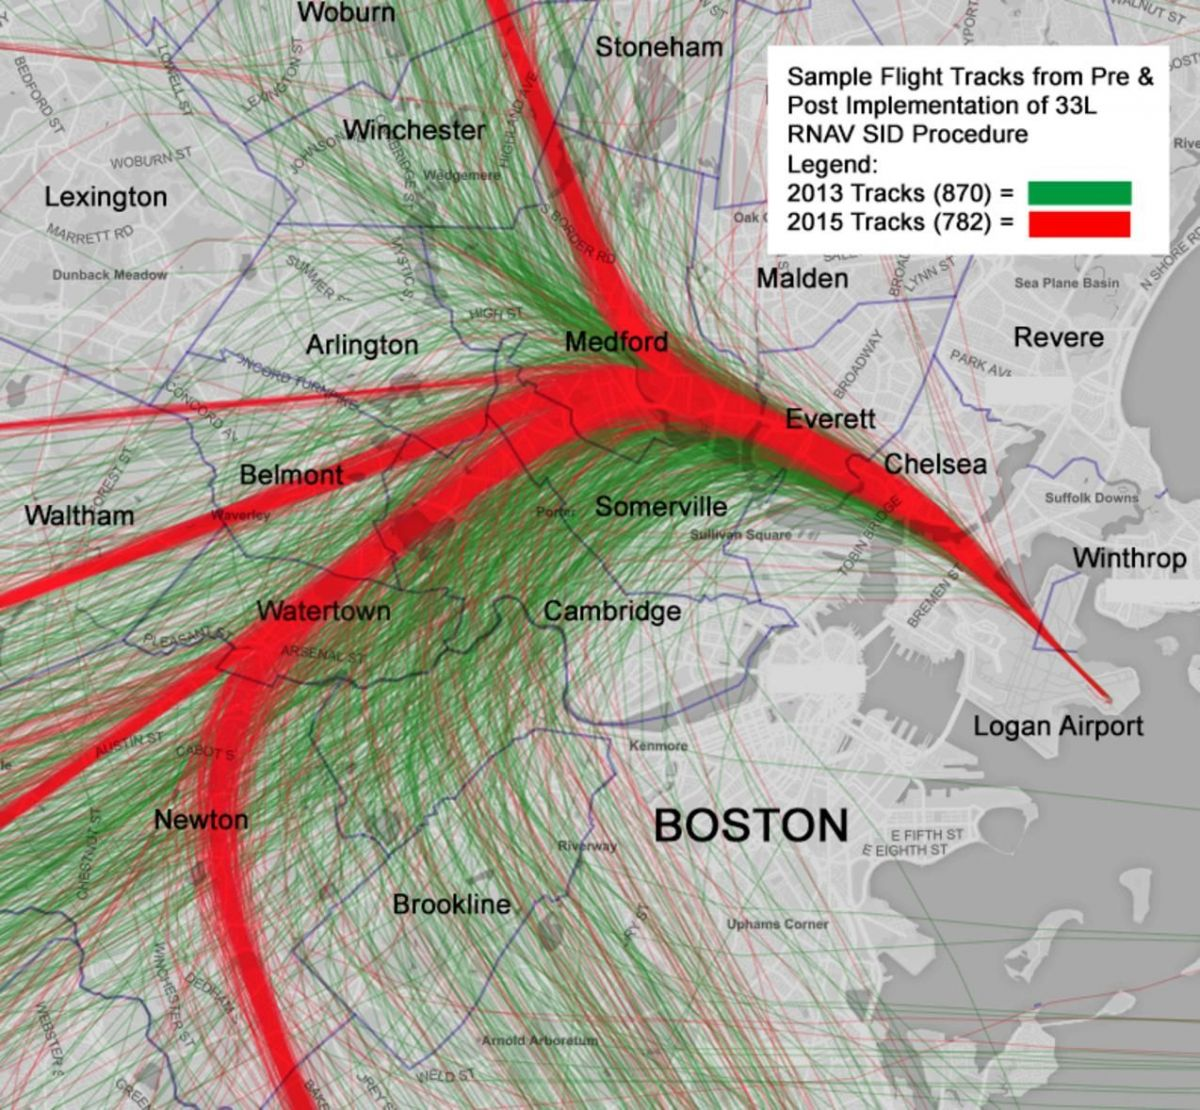 A community group mapped Boston Logan Airport flights departing to the northwest from 2013 (in green) and 2015 (in red), after the FAA began using new routes. Precision navigation concentrates planes over certain neighborhoods, creating new noise issues. (Data source: Massport) PHOTO: KENT JOHNSON